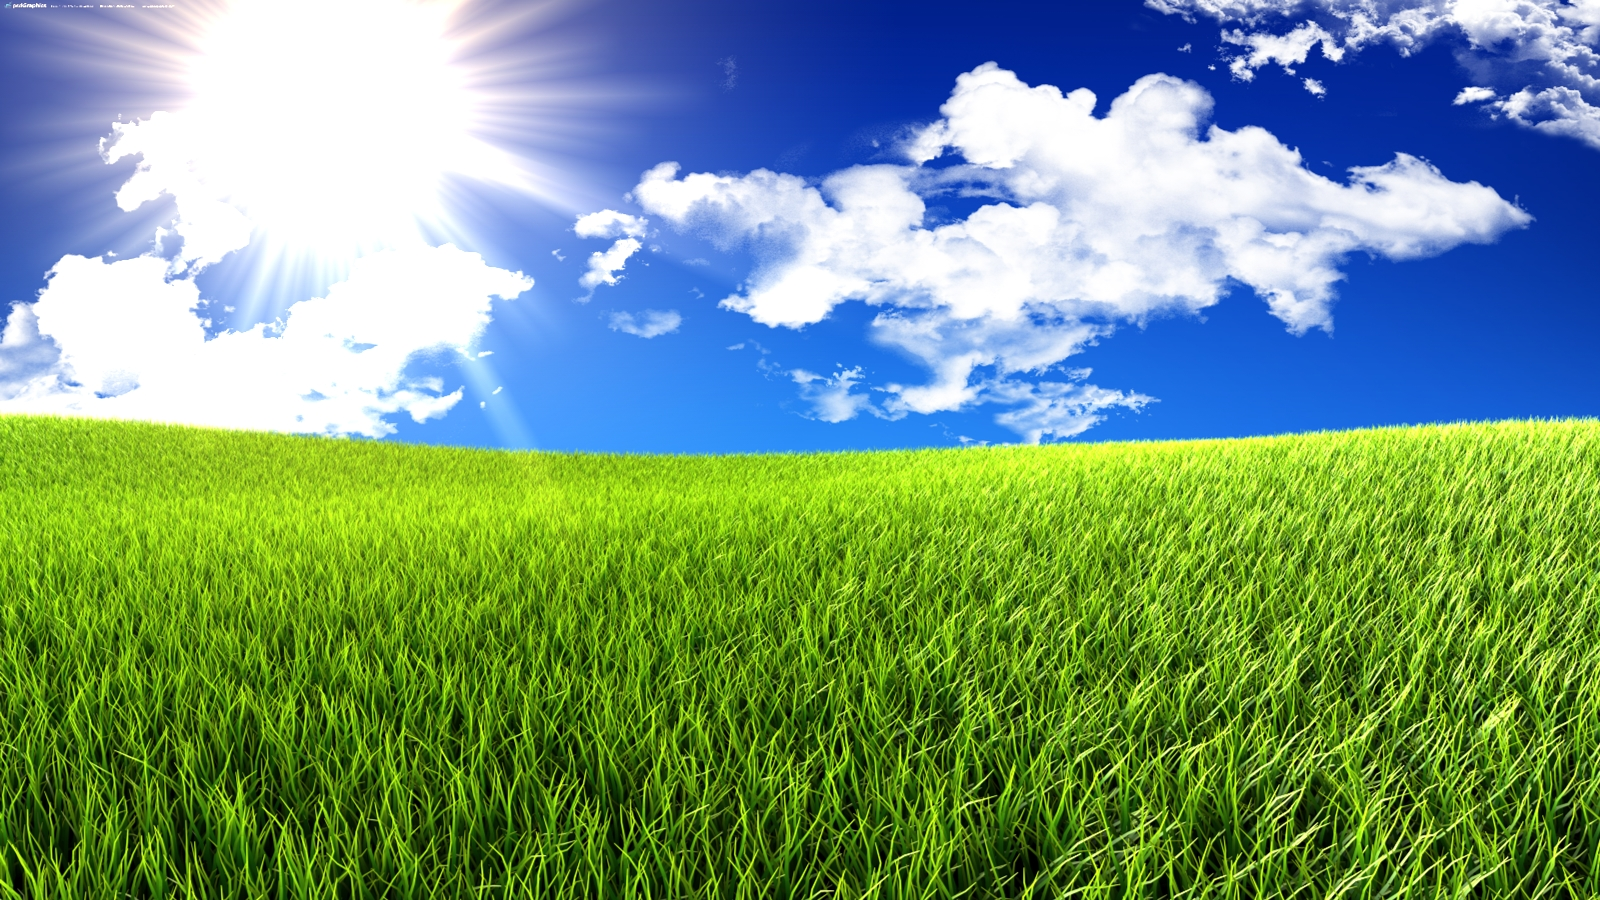 Keywords Grass And Sky Wallpaper and Tags